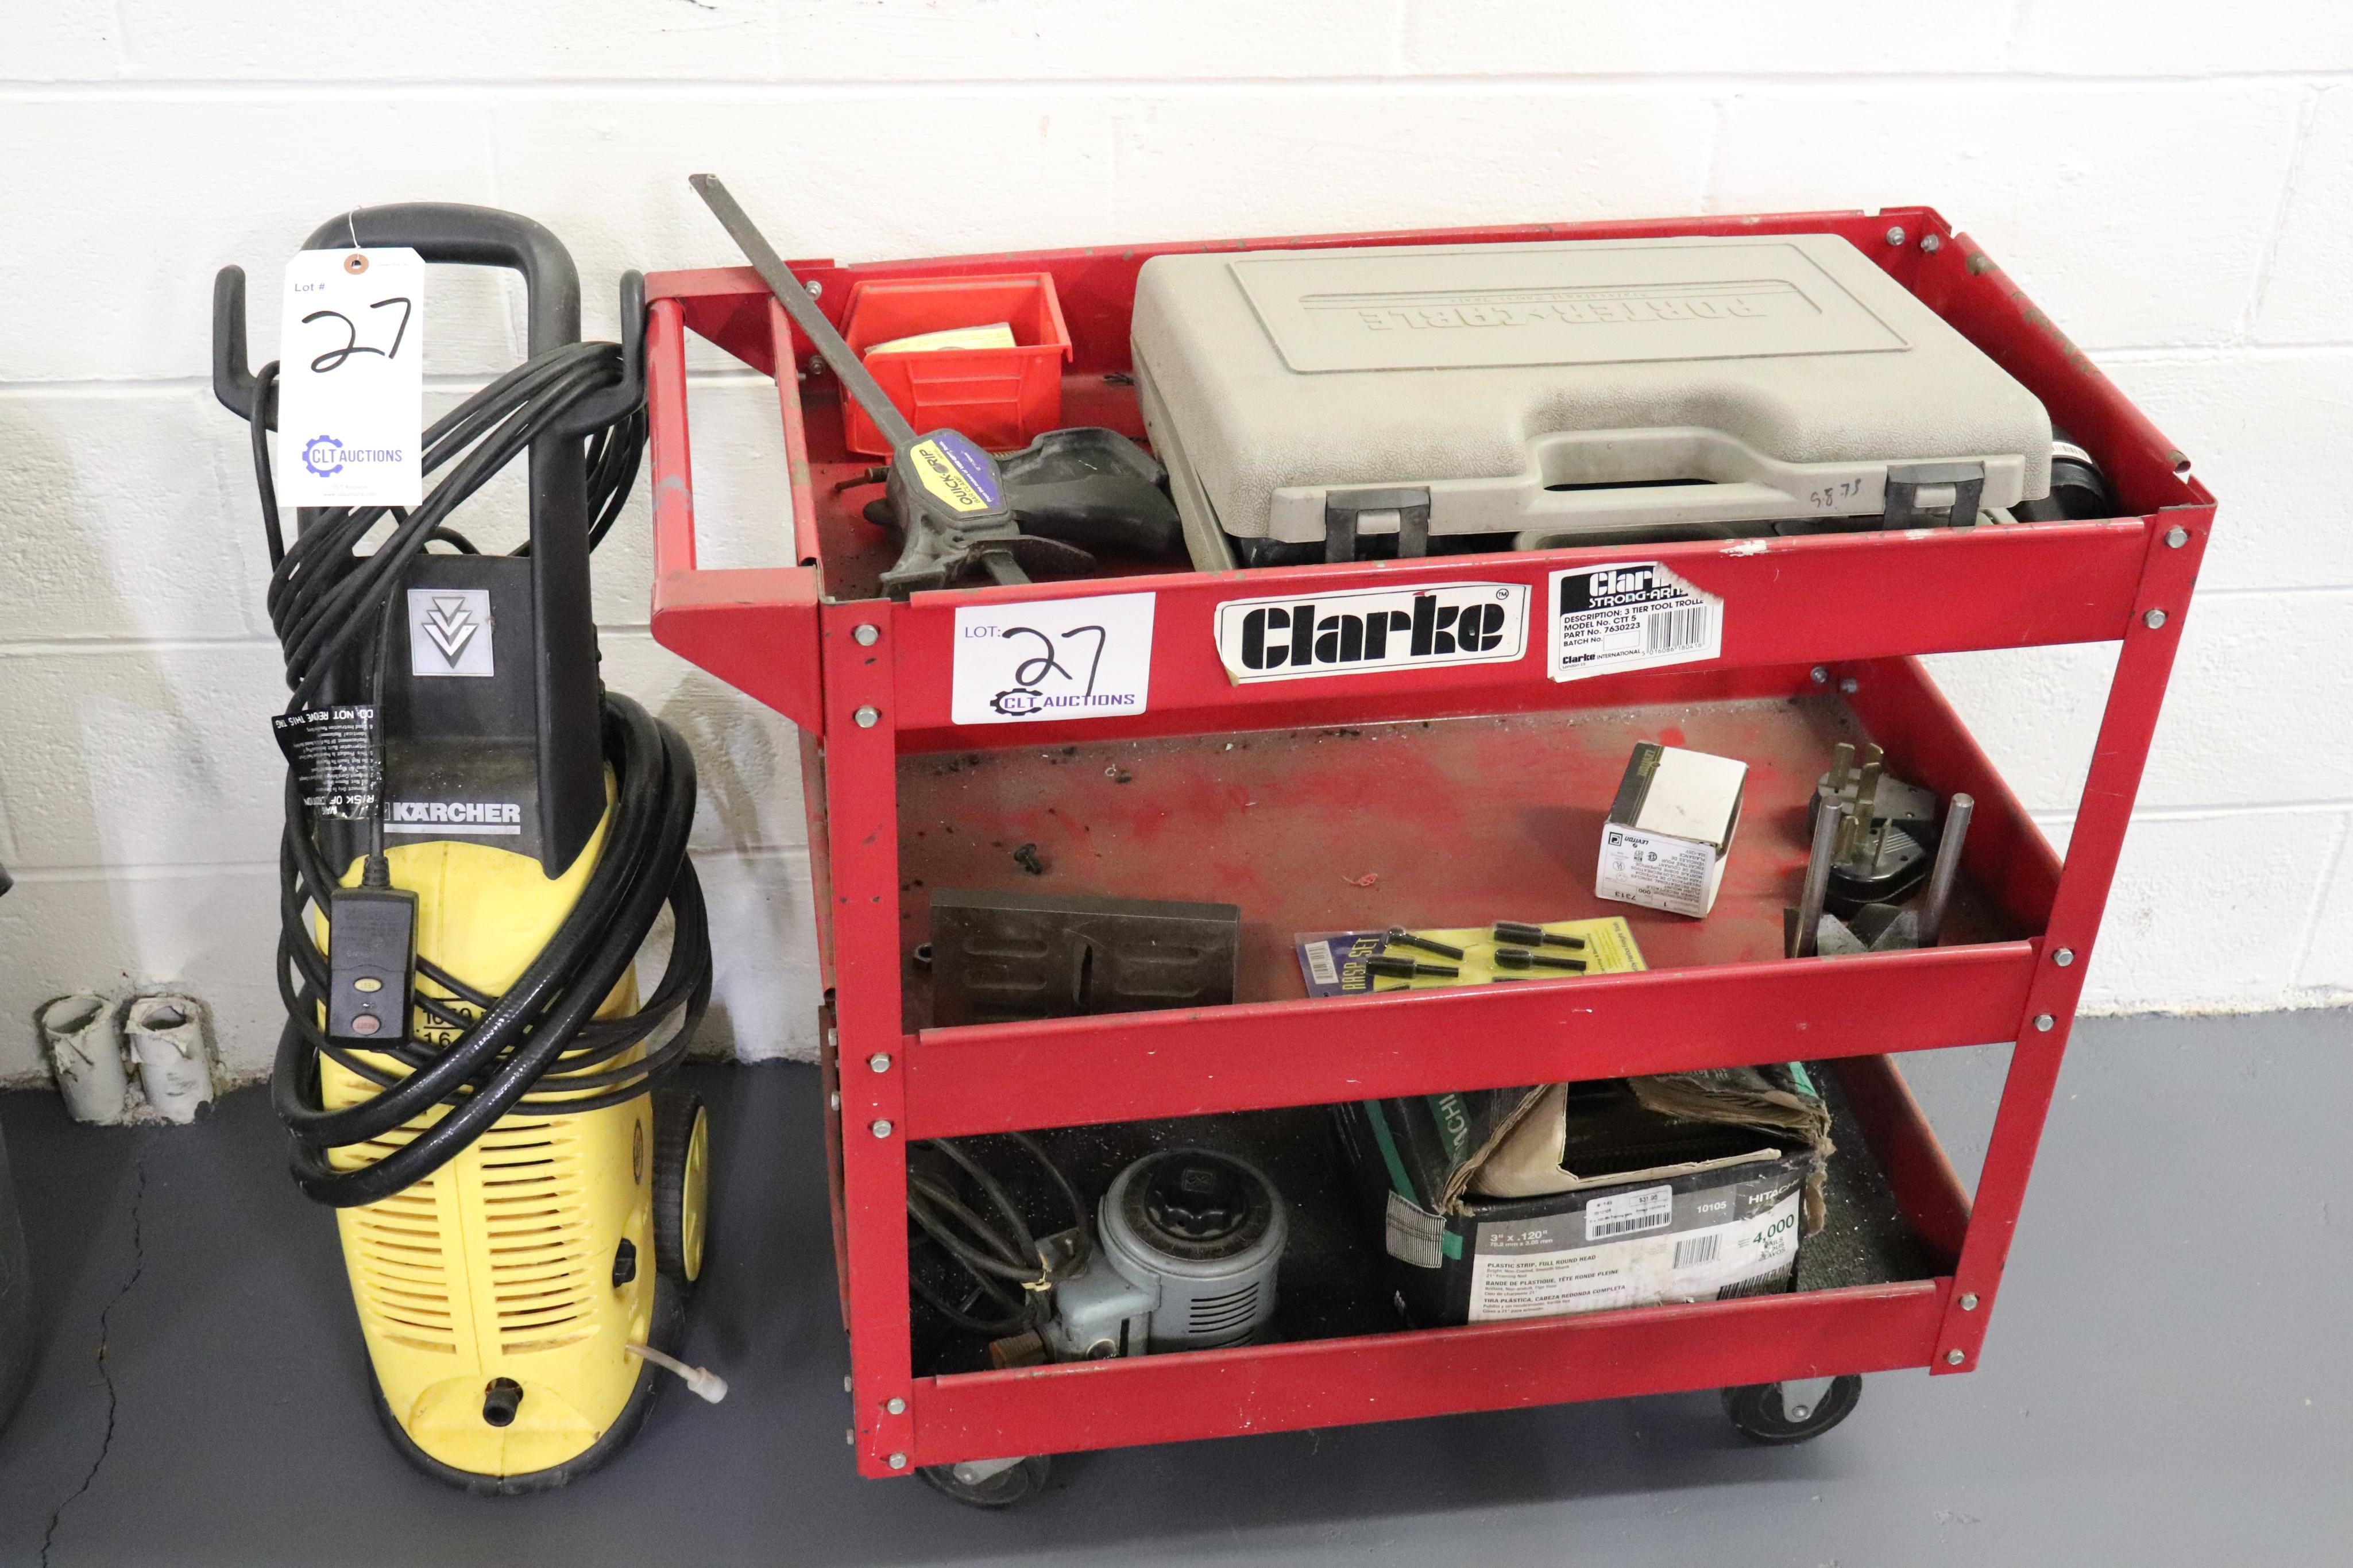 Cart of goodness and Karcher pressure washer